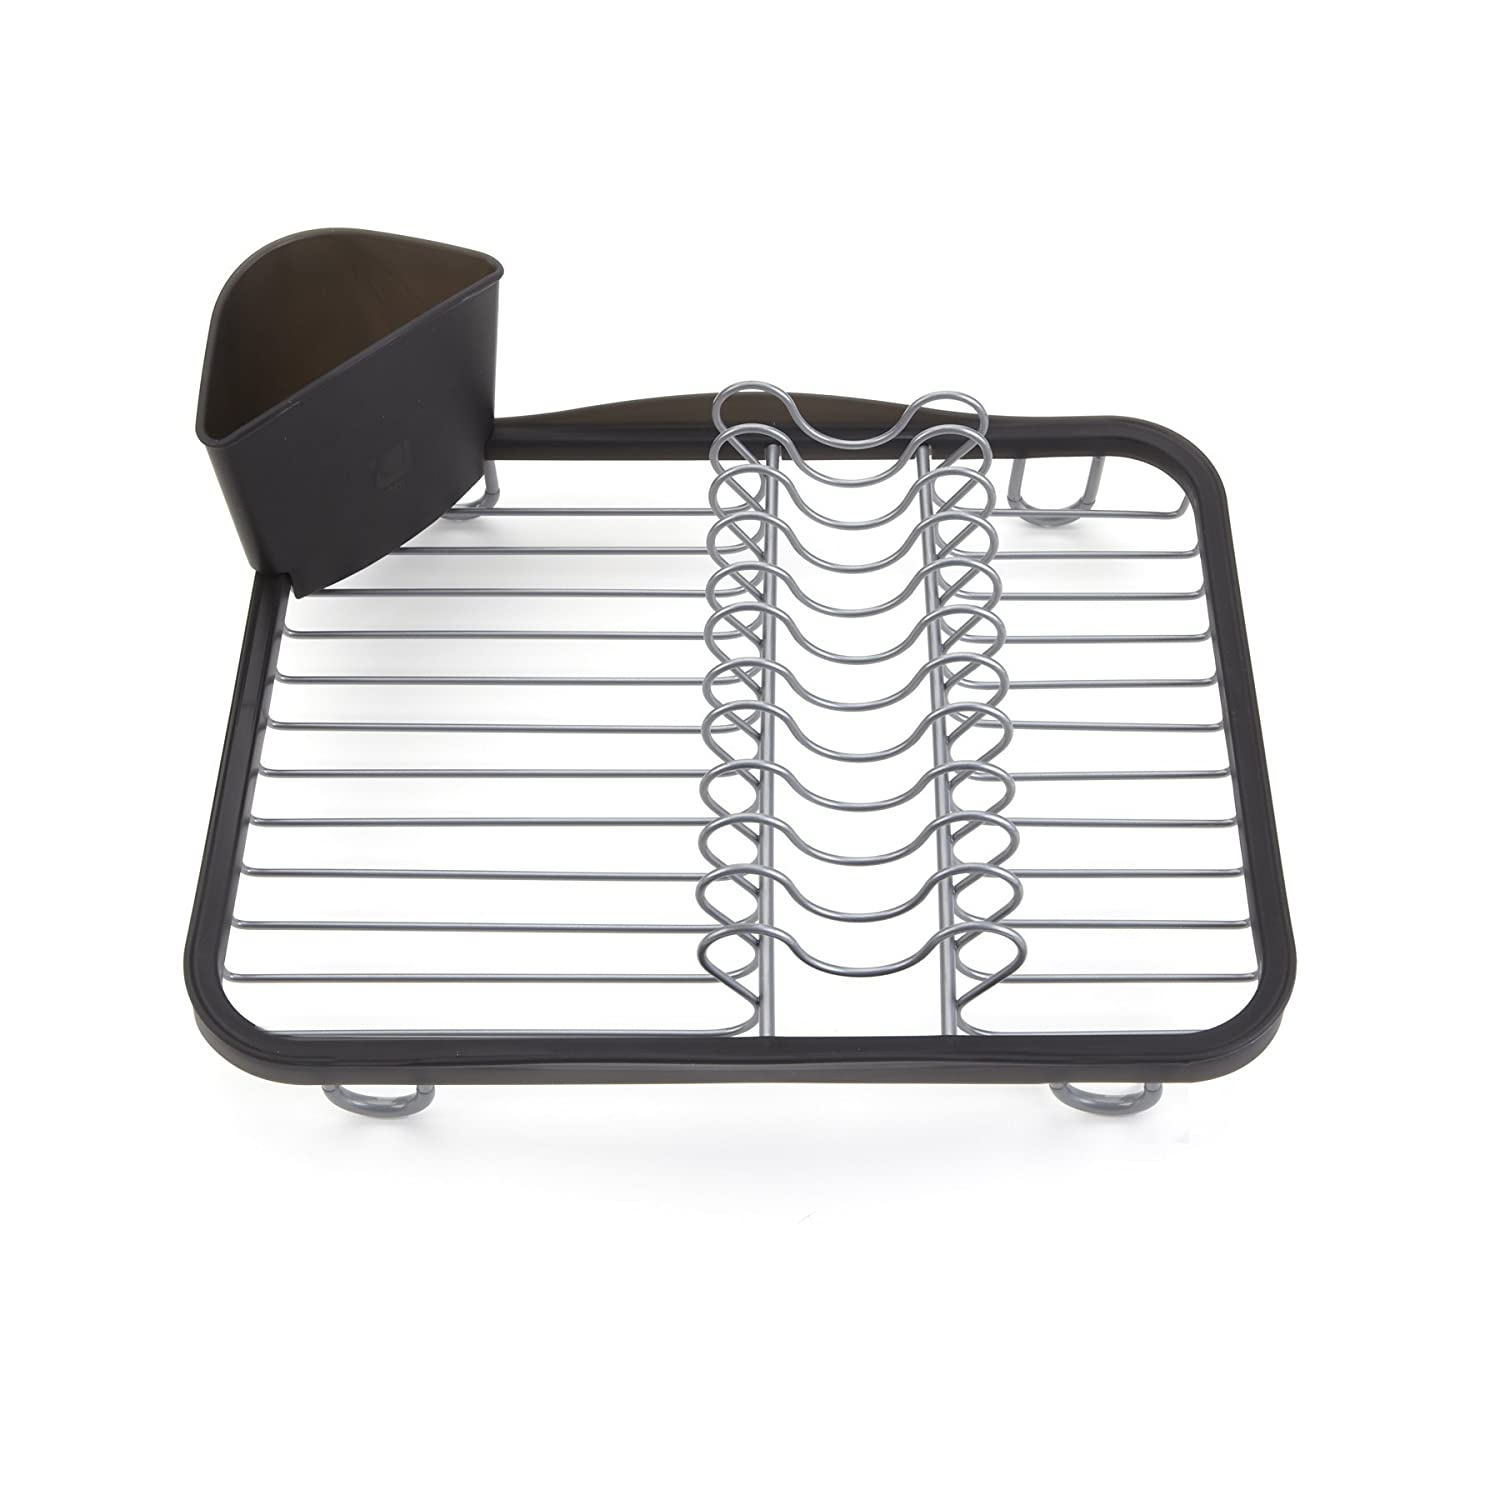 Umbra Sinkin Dish Drying Rack – Dish Drainer Kitchen Sink Caddy with Removable Cutlery Holder, Fits In Sink or on Countertop, Black/Nickel